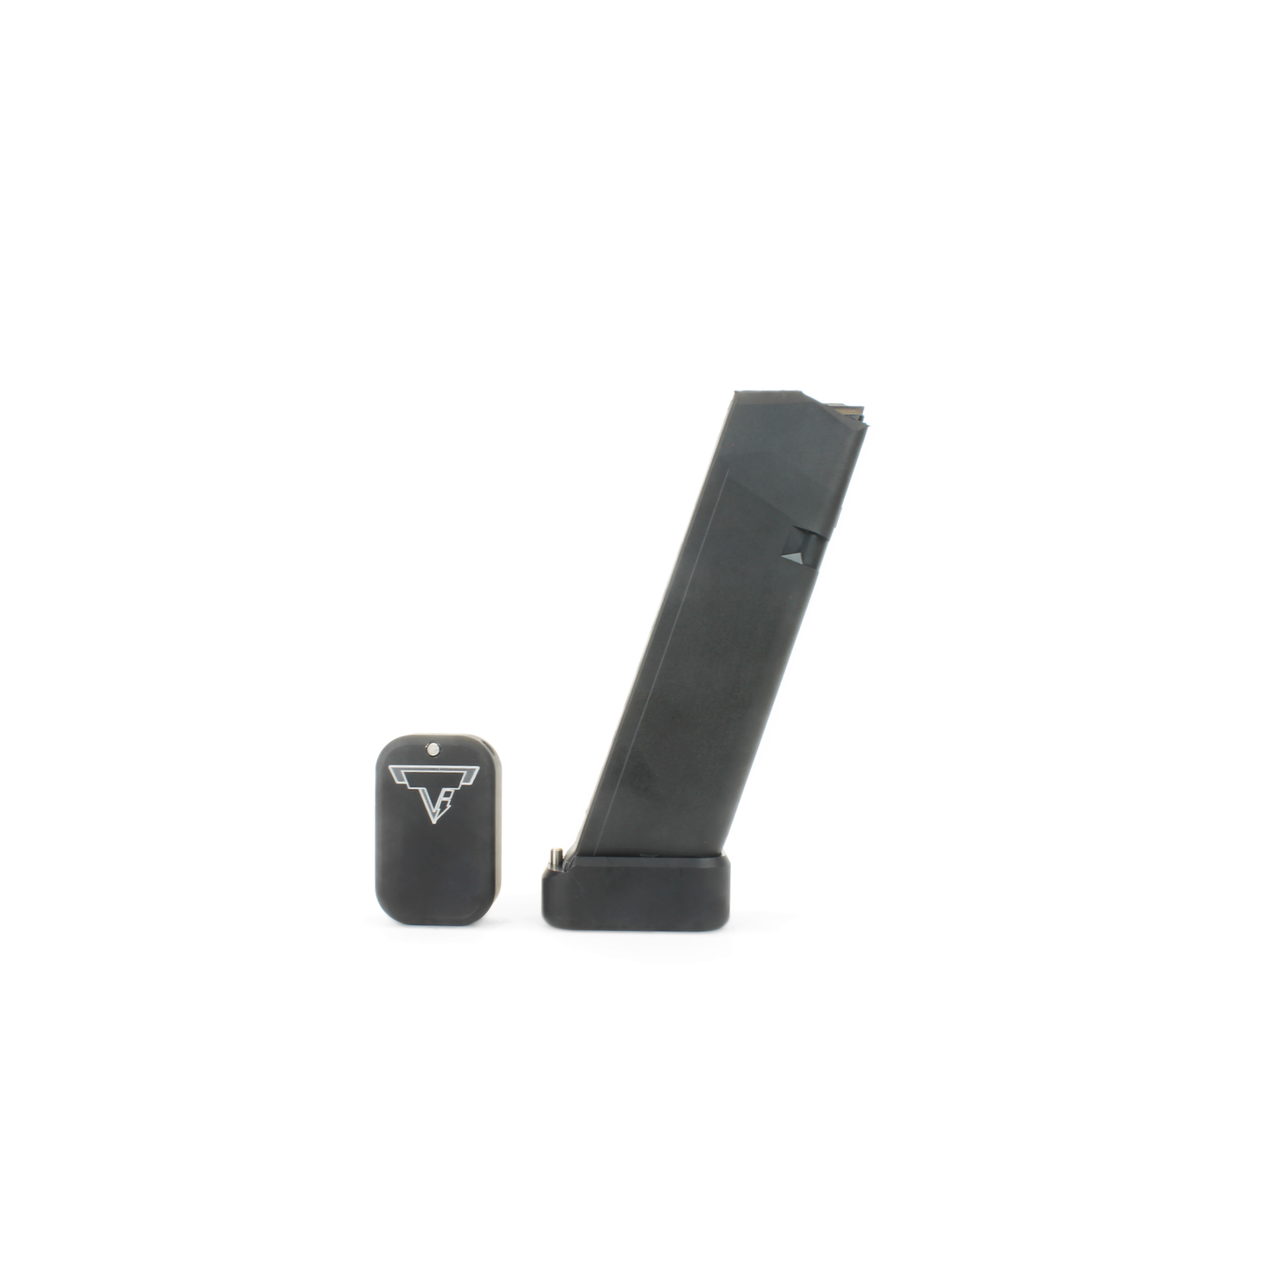 Taran Tactical +0 Base Pad Kit for Standard Sized Glocks 9/40 - Flat Black